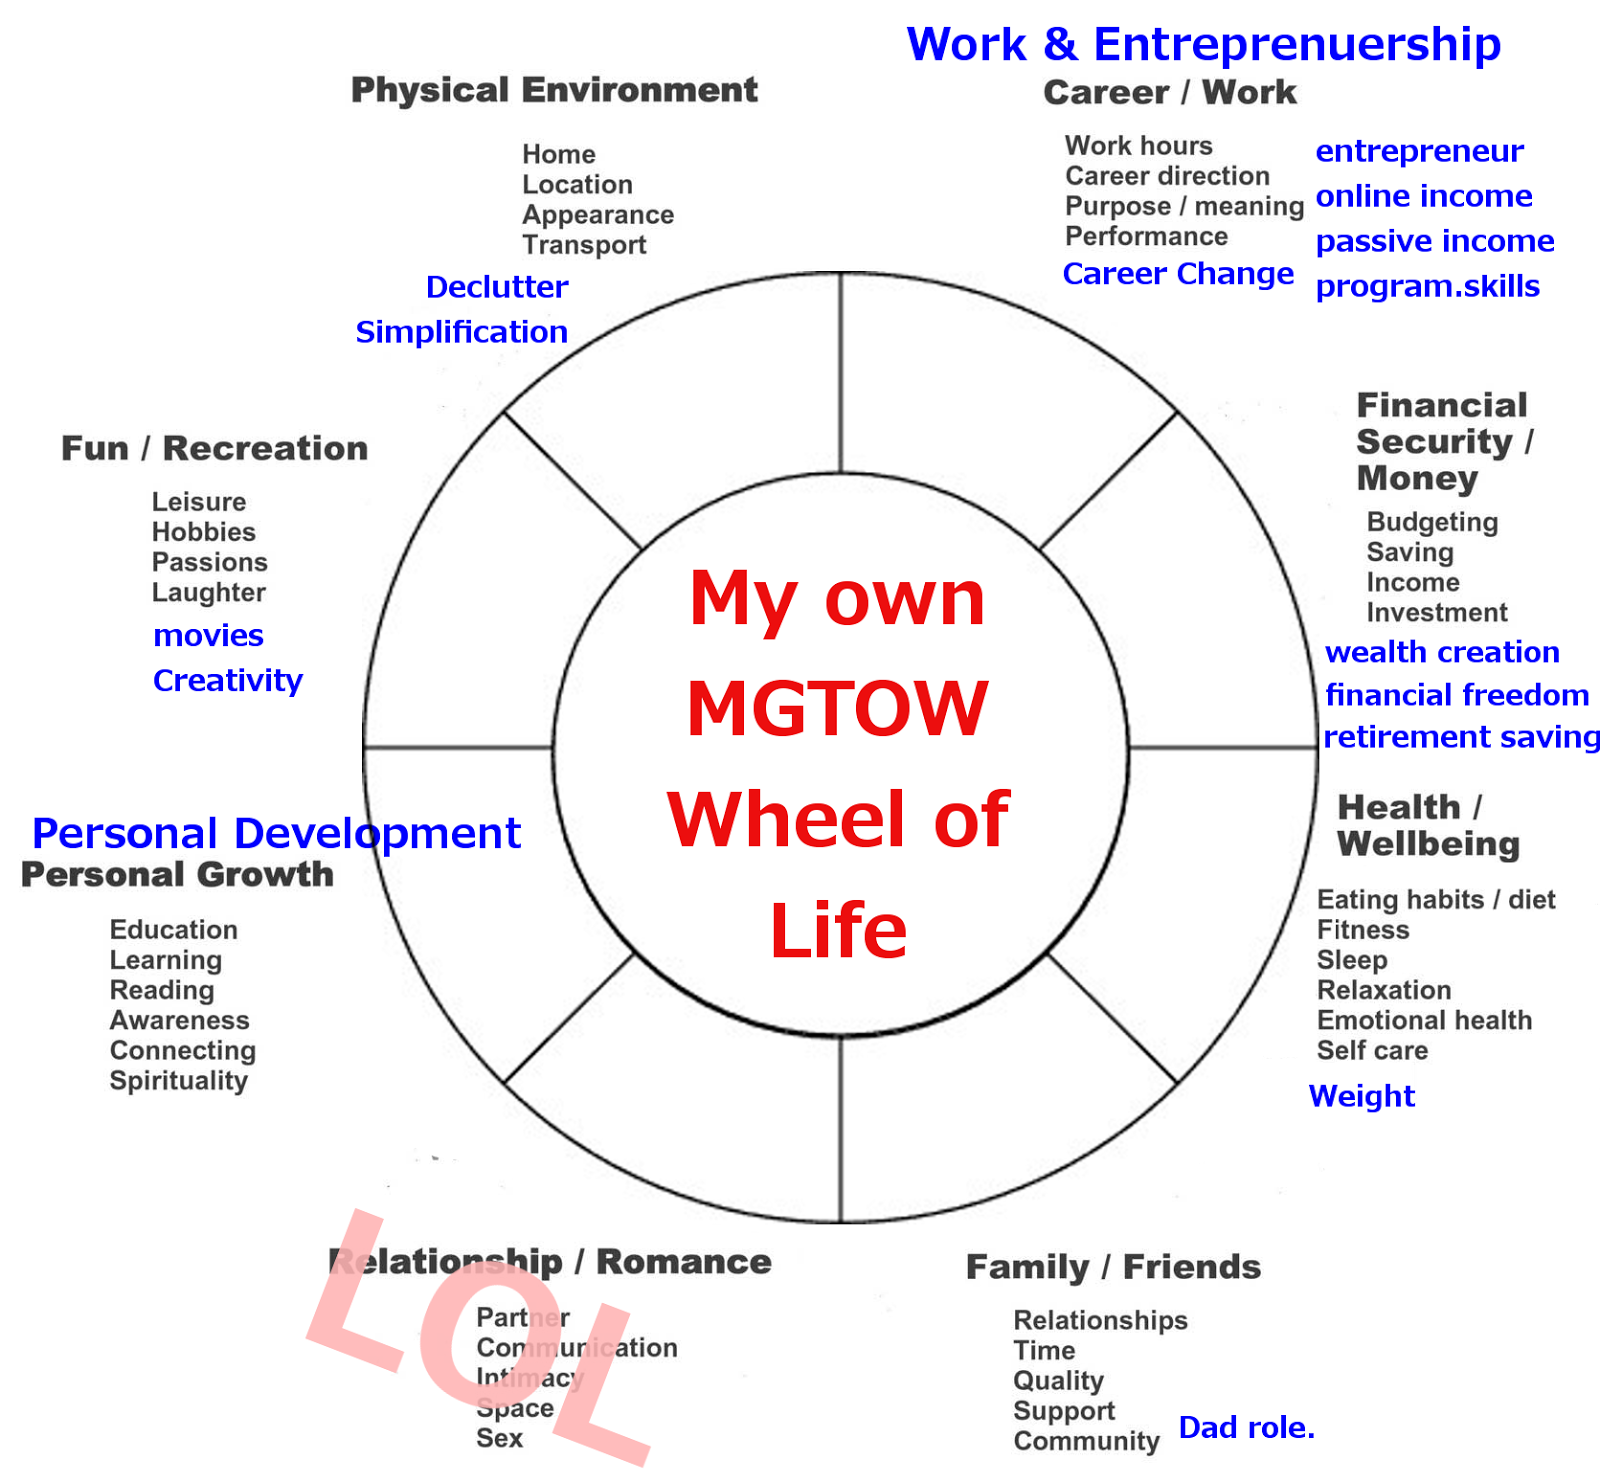 MGTOW wheel of life